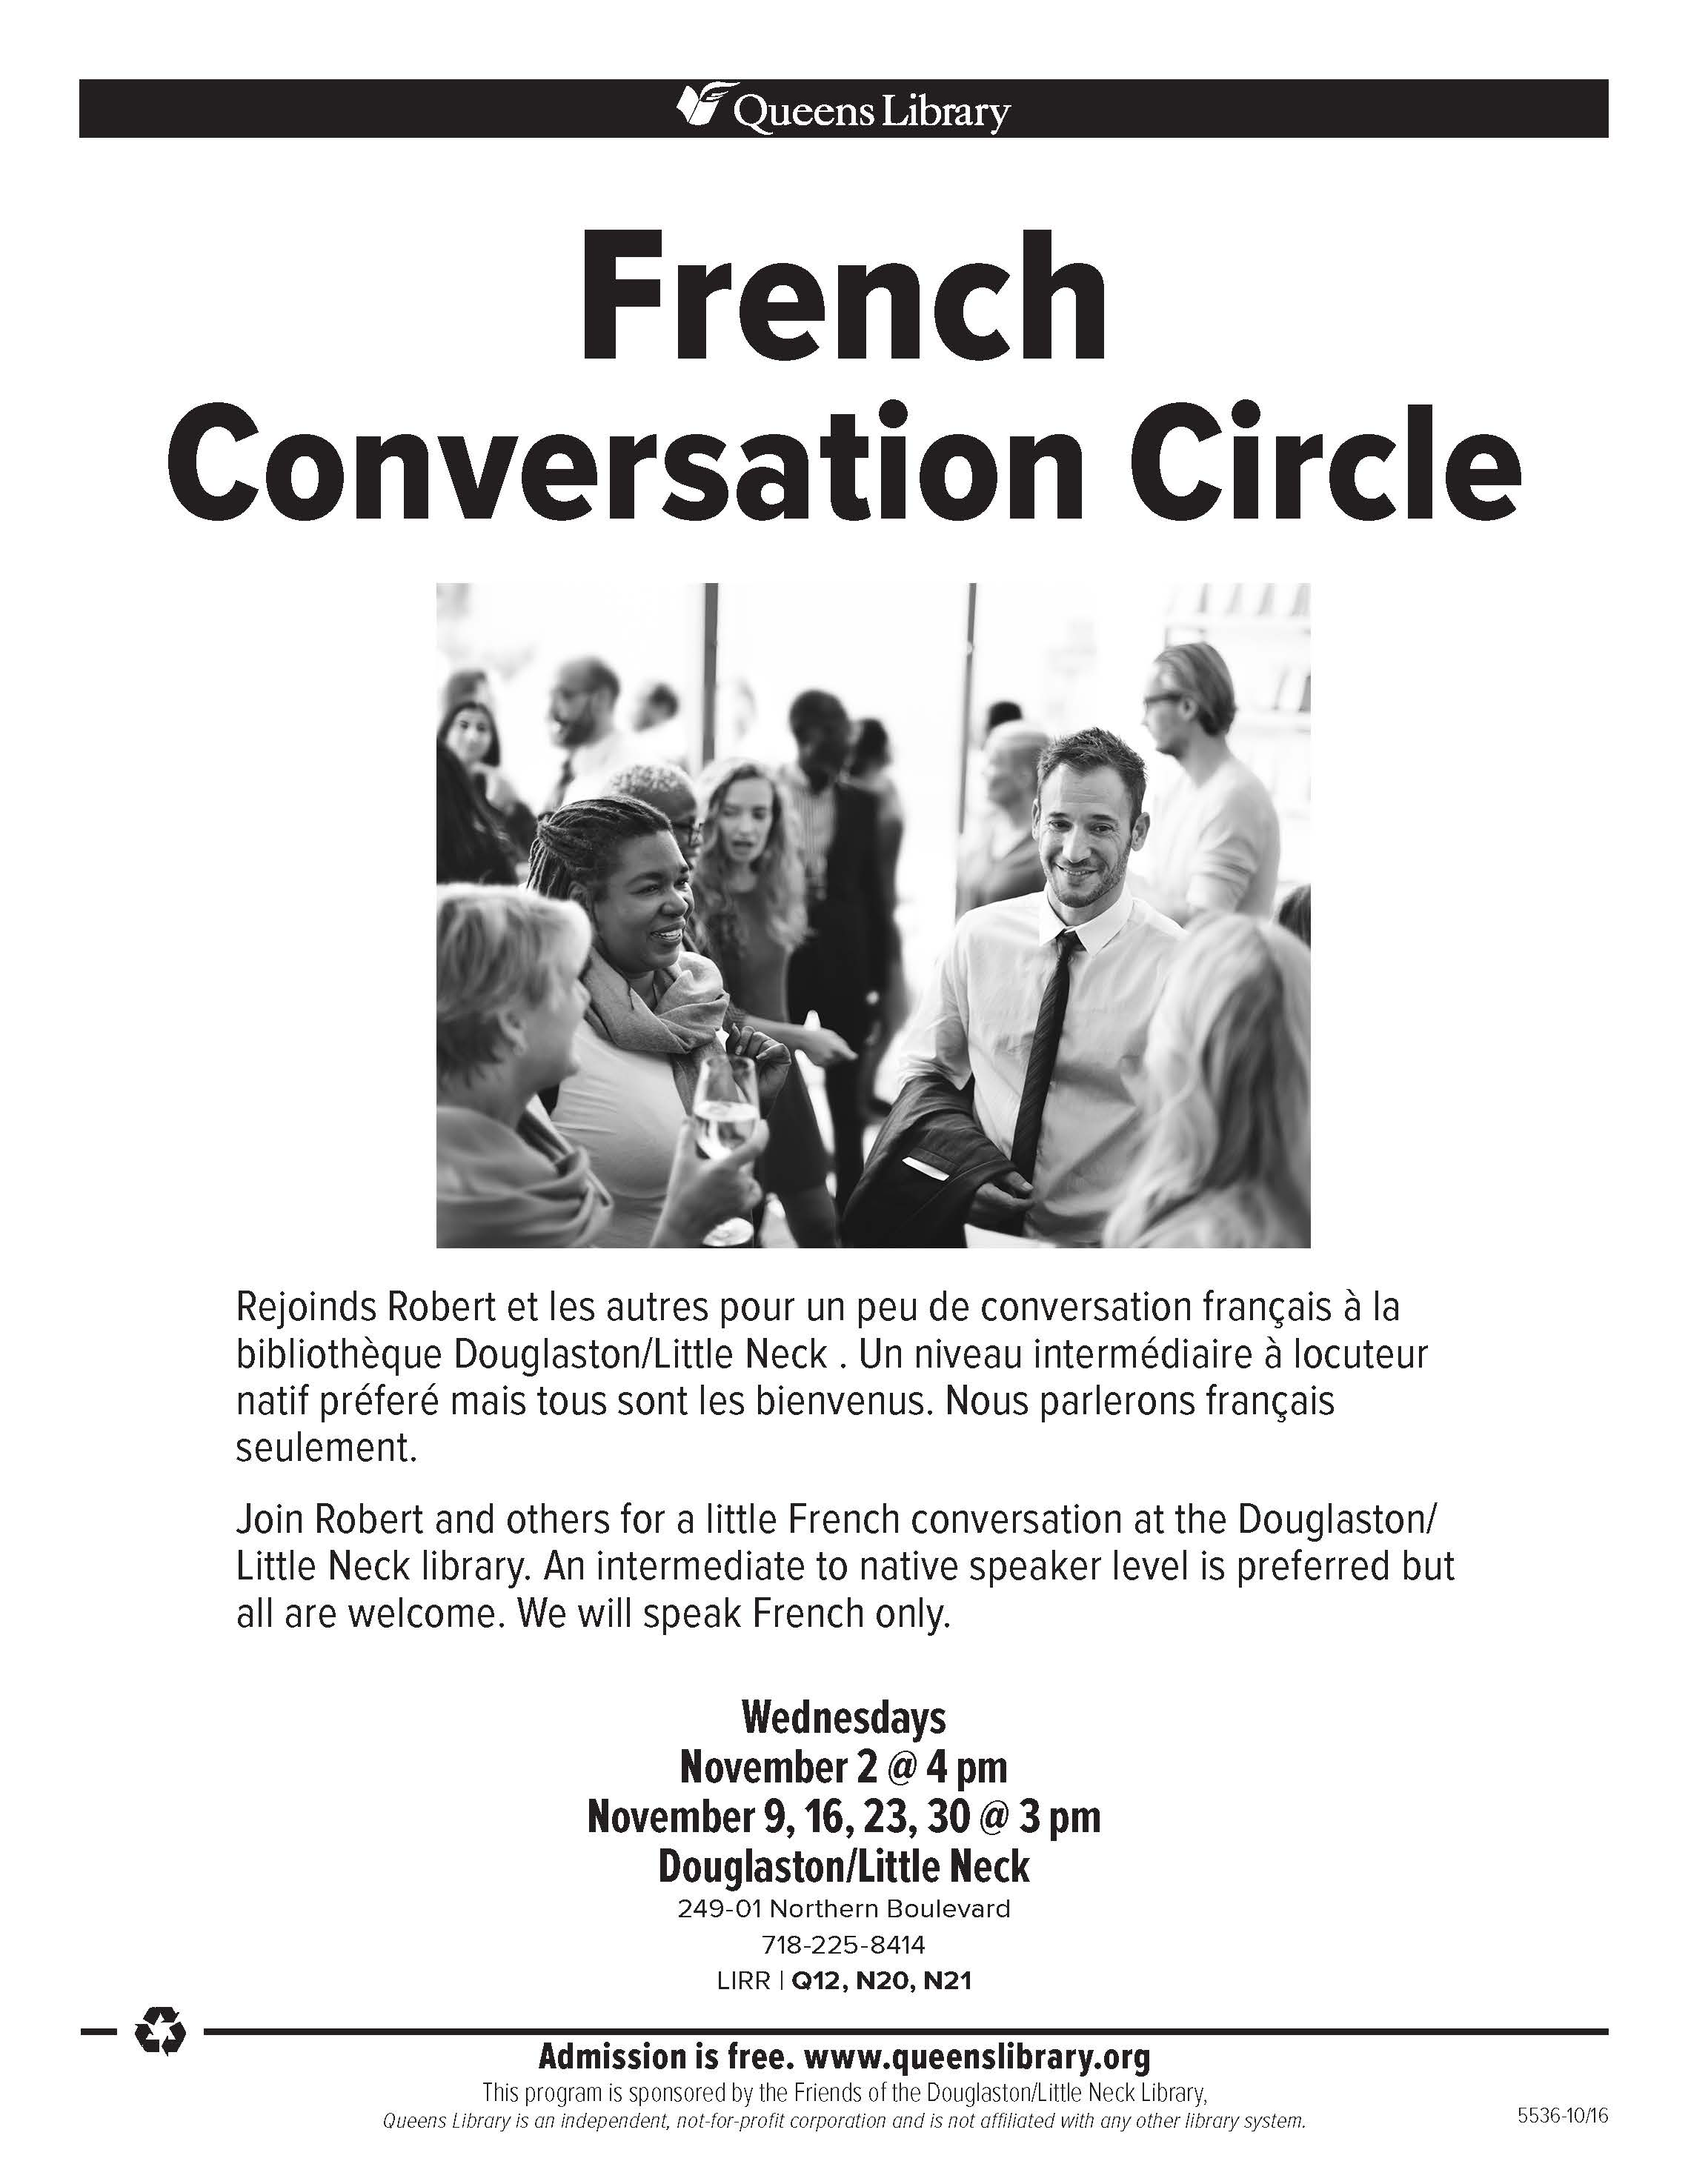 French Conversation Circle @ Douglaston/Little Neck